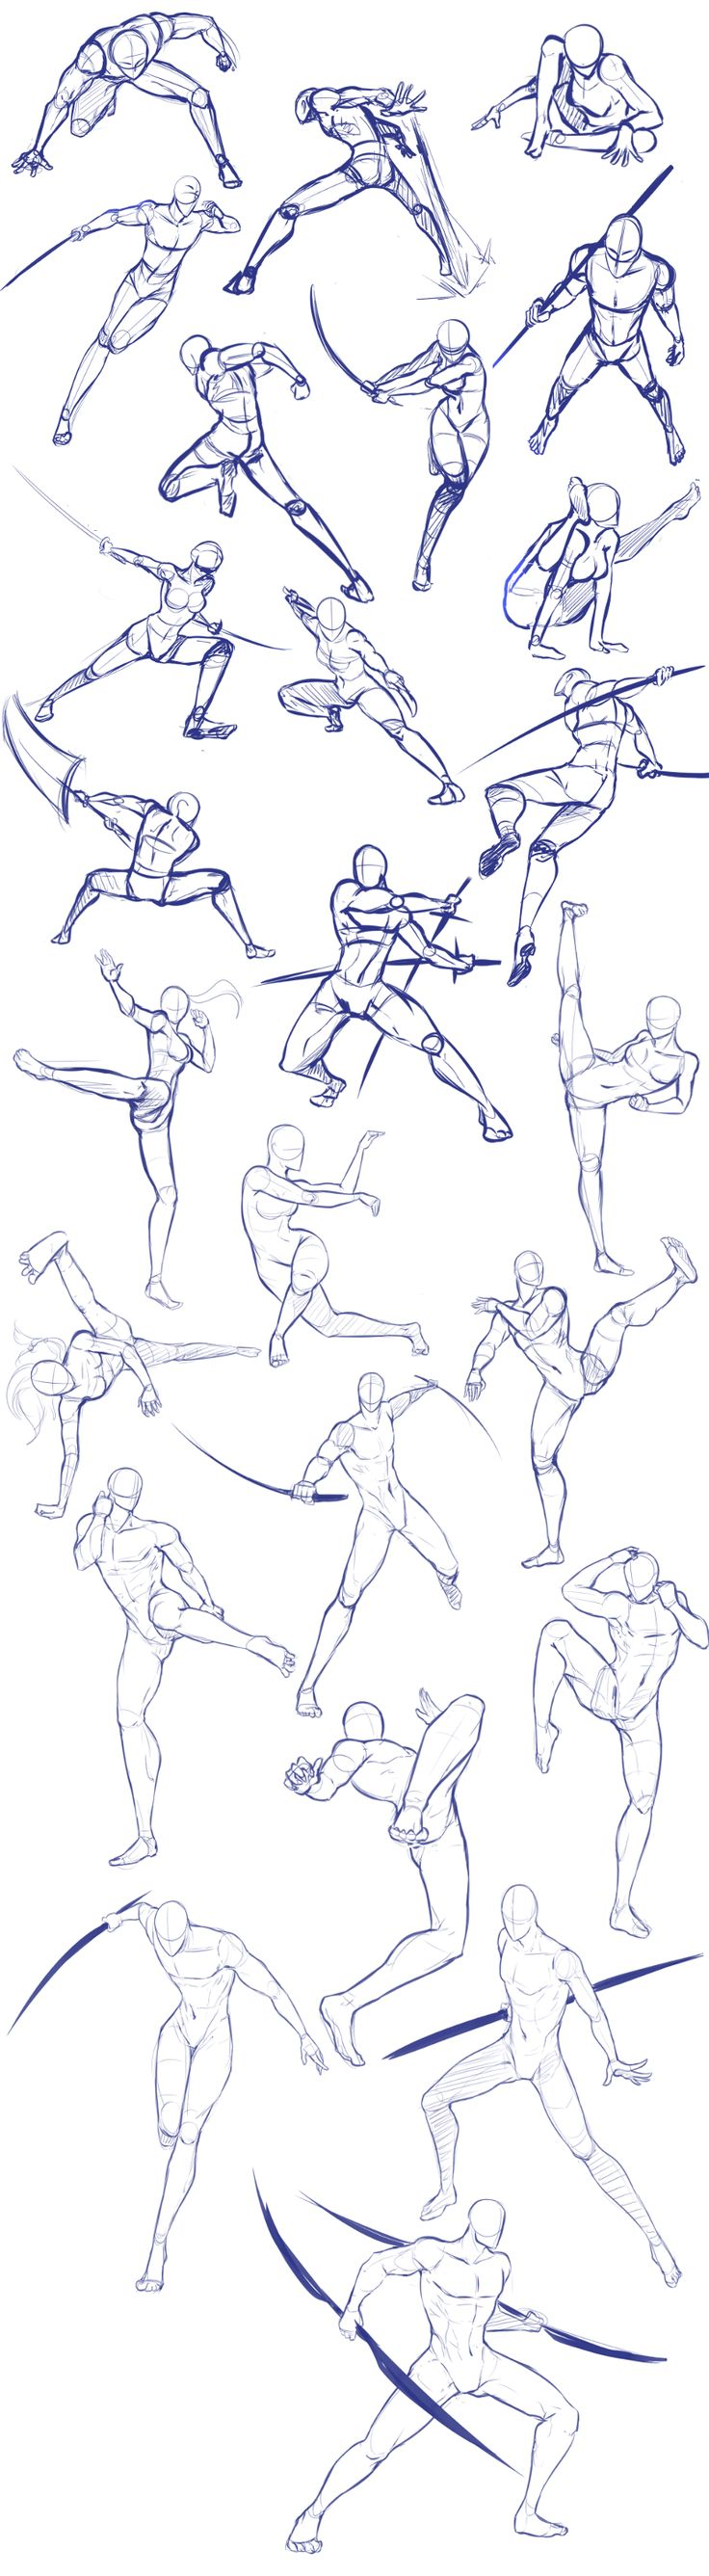 Battle/action poses by Antarija on DeviantArt